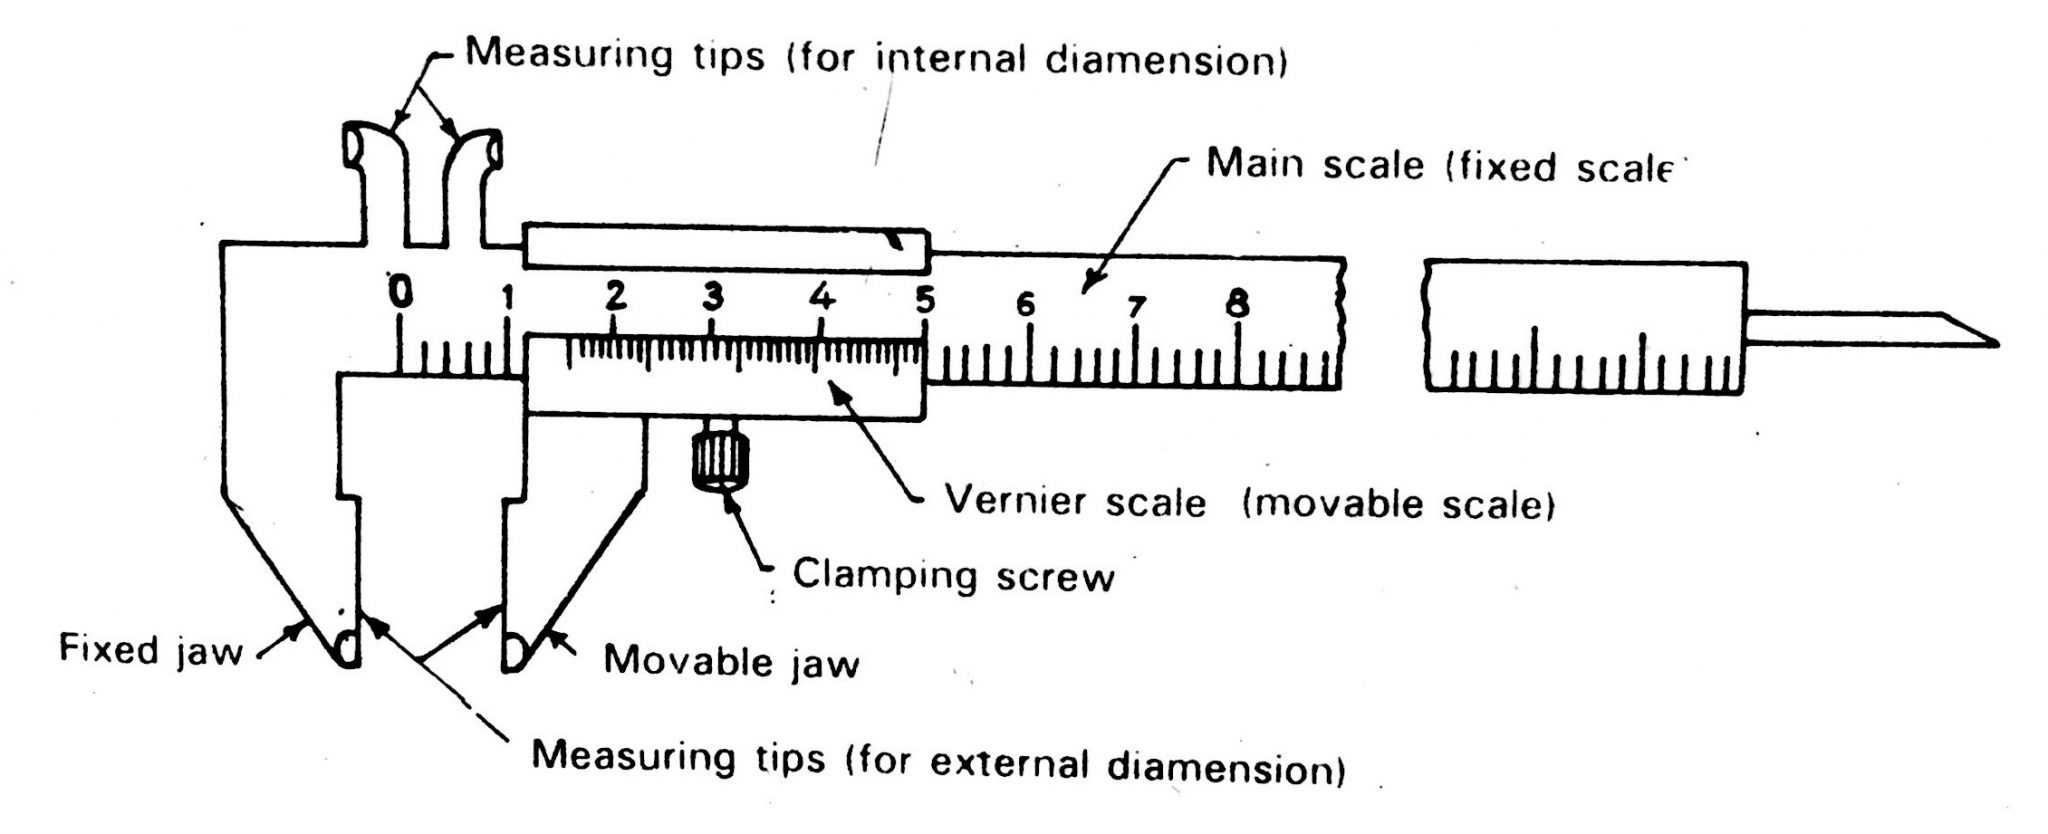 vernier calliper diagram working principle extrudesign rh extrudesign com vernier caliper diagram drawing vernier caliper diagram in hindi